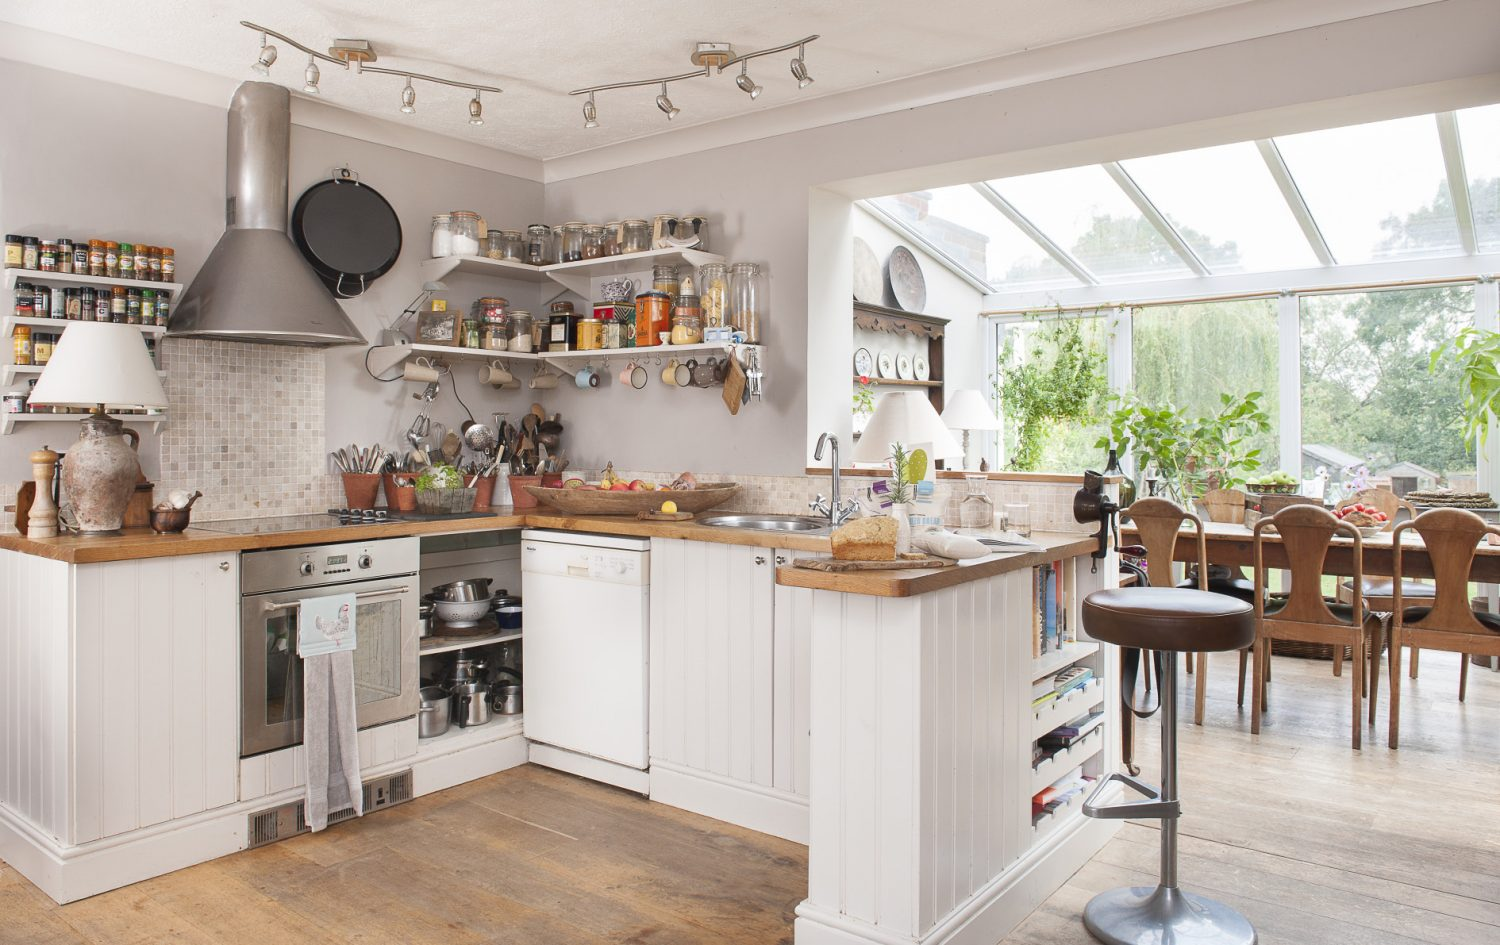 Tina's open plan kitchen and conservatory is a great space for entertaining